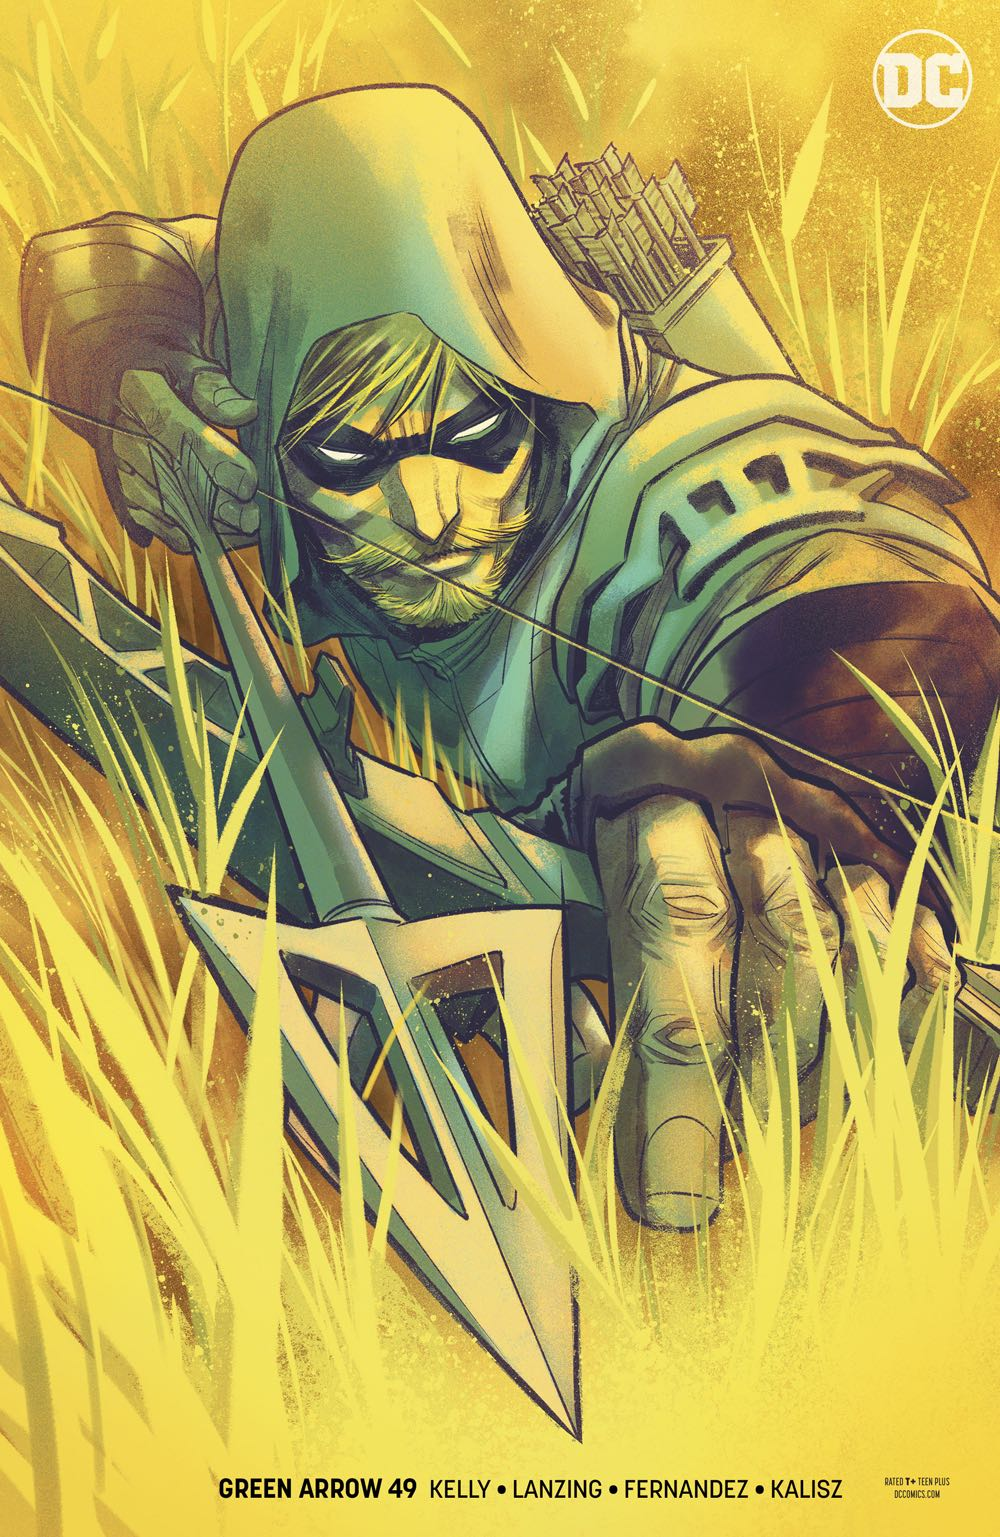 Episode 38 Variant of the Week! - (DC) Green Arrow #49Cover by Francis ManapulWritten by Jackson Lanzing and Collin KellyIllustrated by Javi FernandezDid the Content Match the Drapes? - UNR